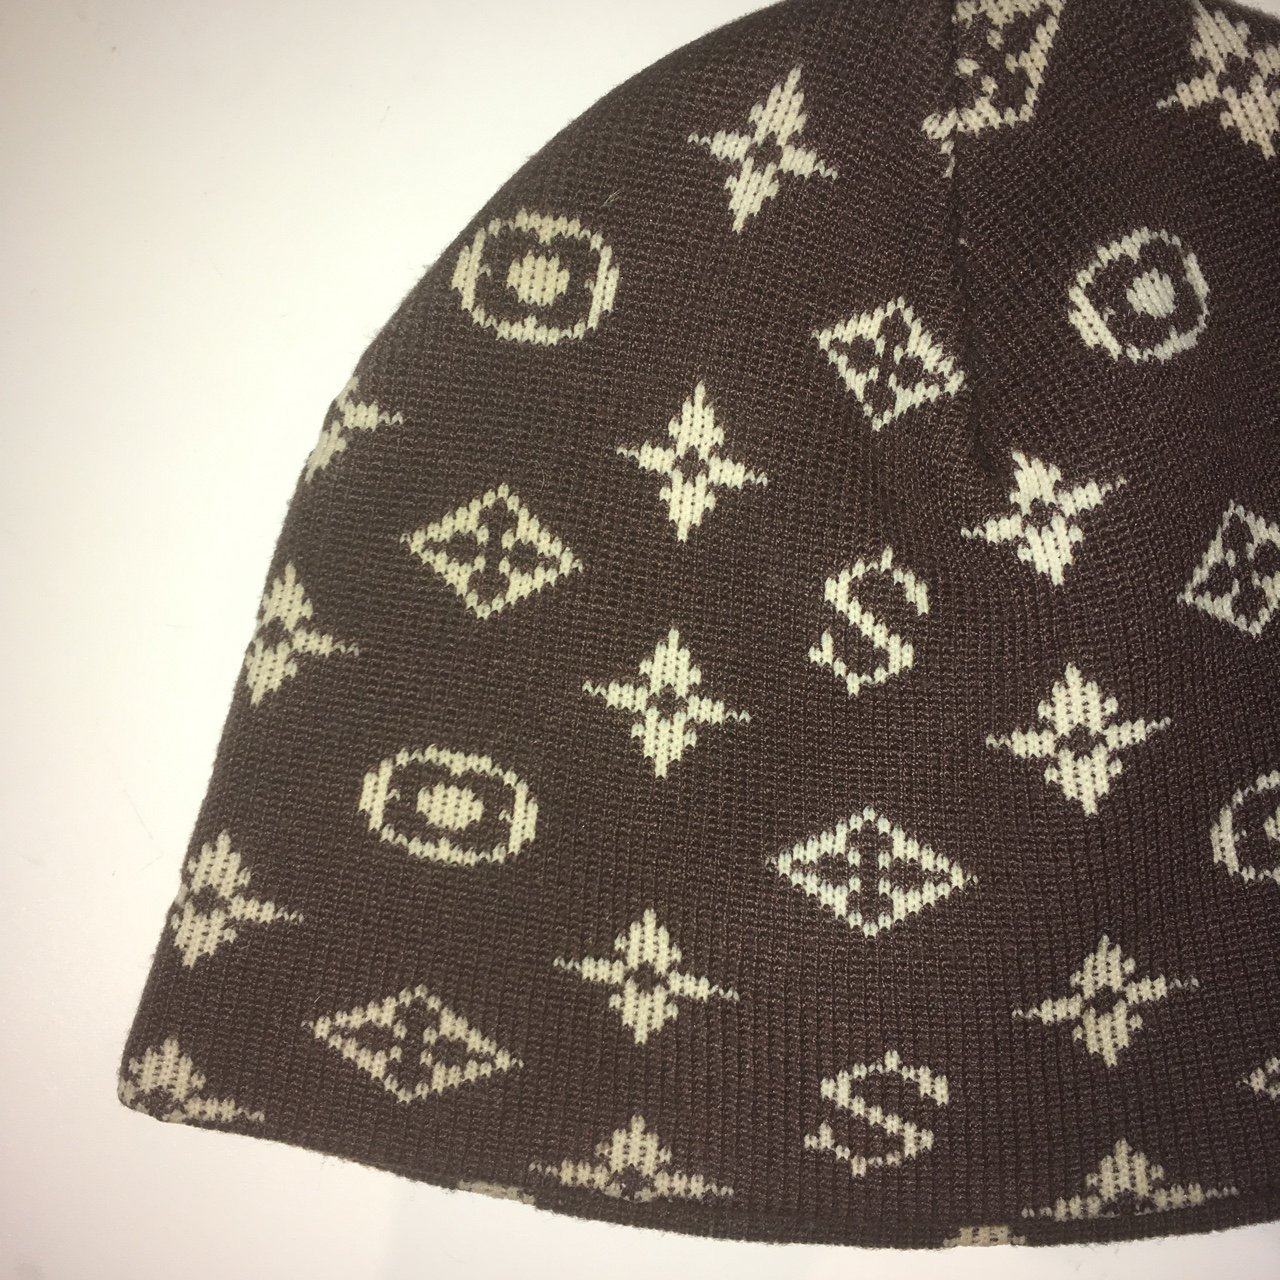 Supreme x Louis Vuitton monogram beanie hat from 2002 really - Depop f17af8caf3b